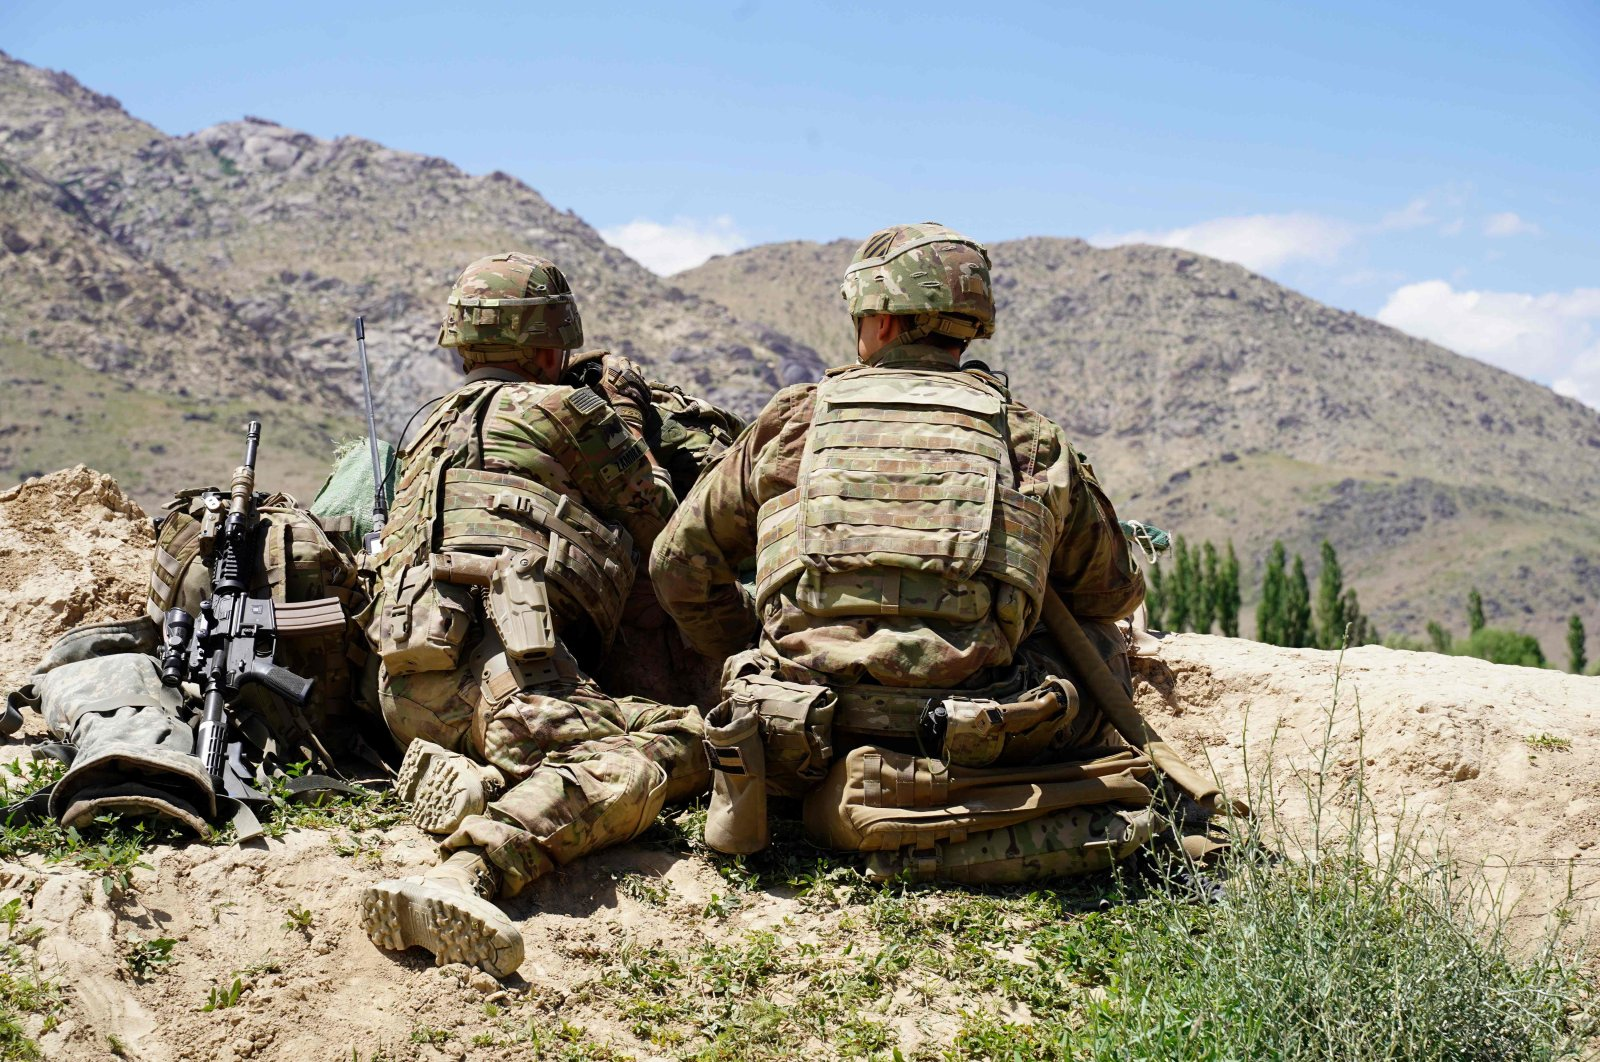 In this file photo, U.S. soldiers look out over hillsides during a visit of the commander of U.S. and NATO forces in Afghanistan Gen. Scott Miller at the Afghan National Army (ANA) checkpoint in Nerkh district of Wardak province, June 6, 2019. (AFP Photo)